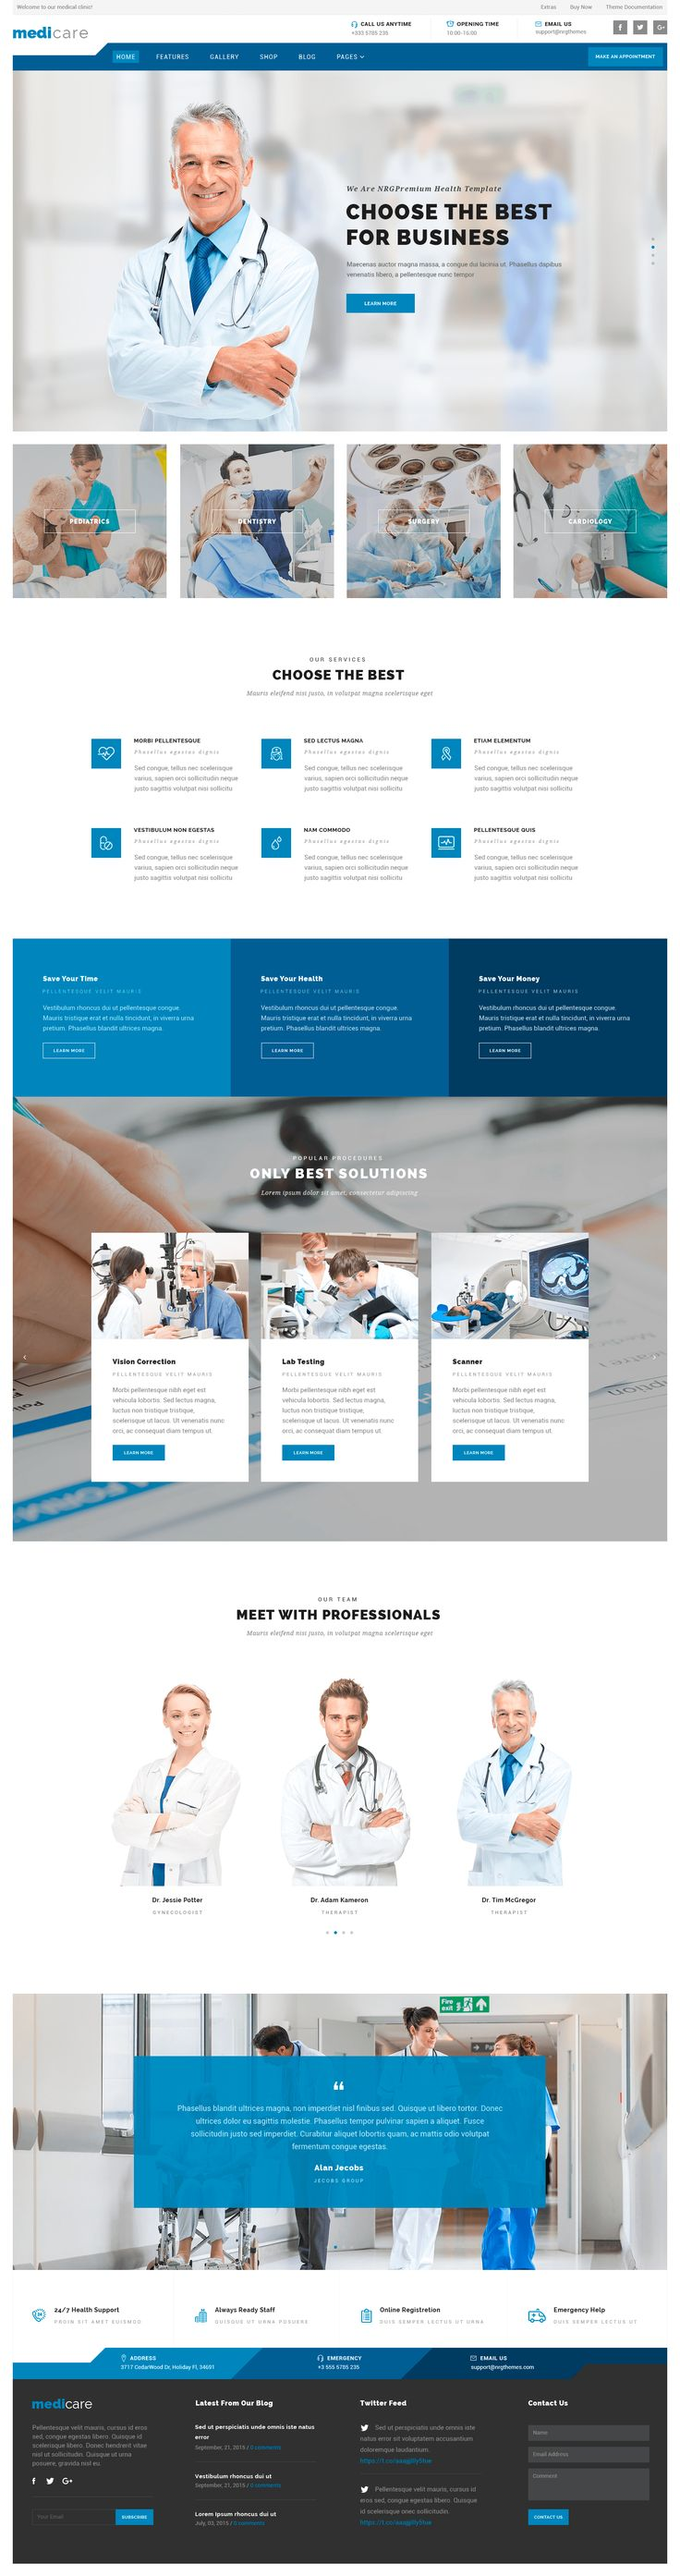 We provide medical website design and internet marketing services for physicians. Websites for doctors, medical marketing web sites, and physician website design are some services by NJ WEB SOFT http://www.njwebsoft.com